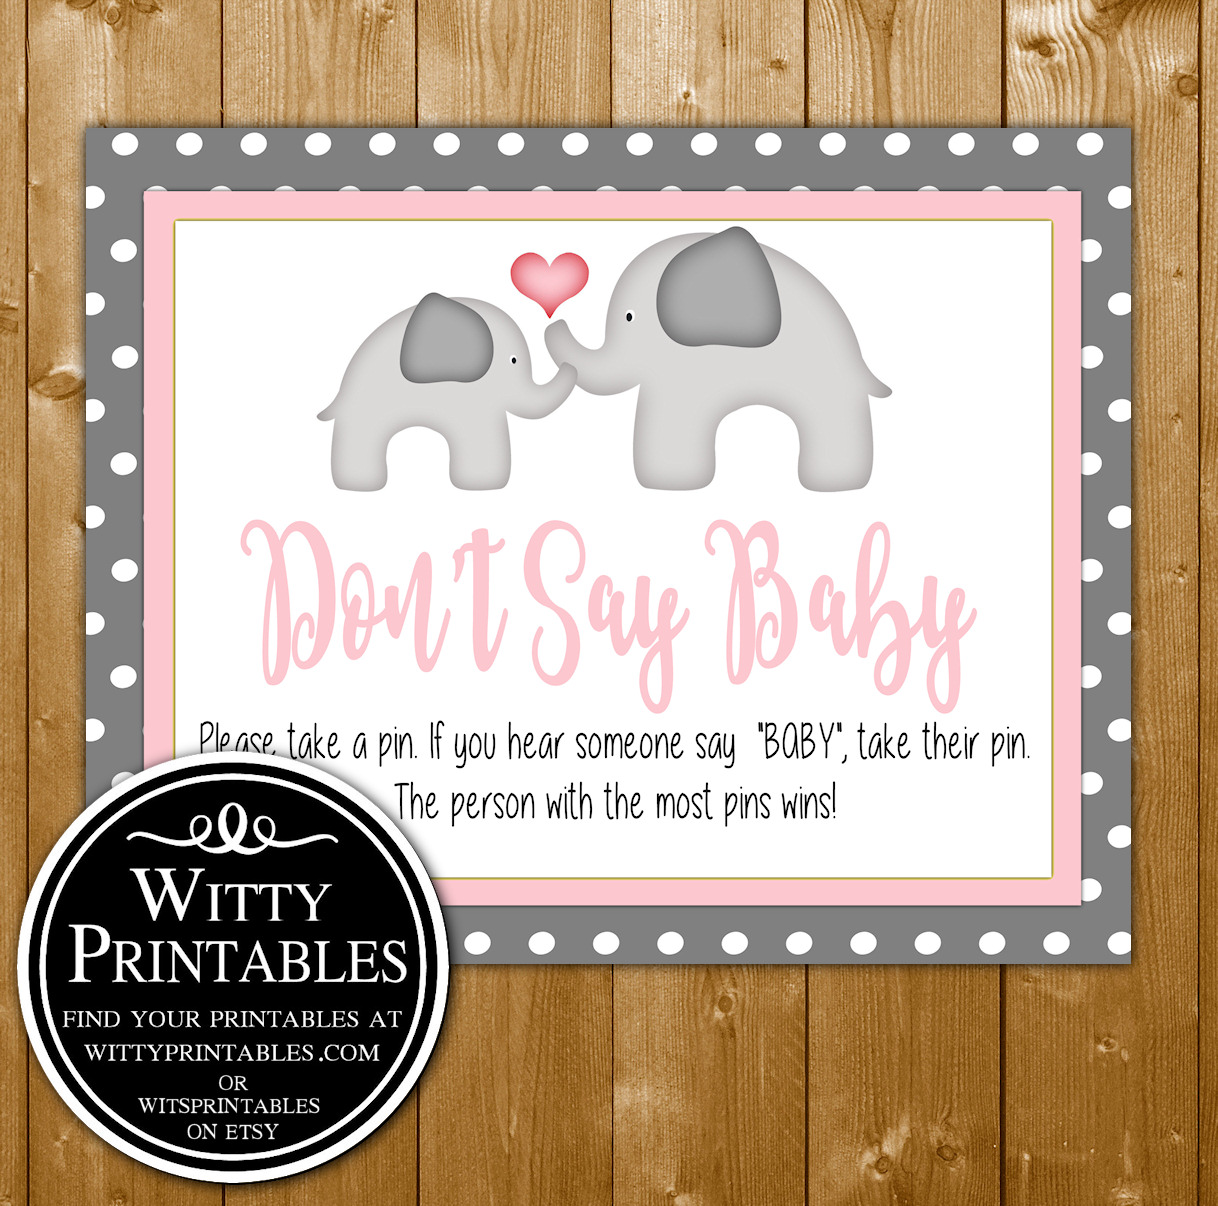 image relating to Don T Say Baby Game Printable named Dont Say Little one Boy or girl Shower Activity Printable Purple Elephant Concept for a Woman Child Shower